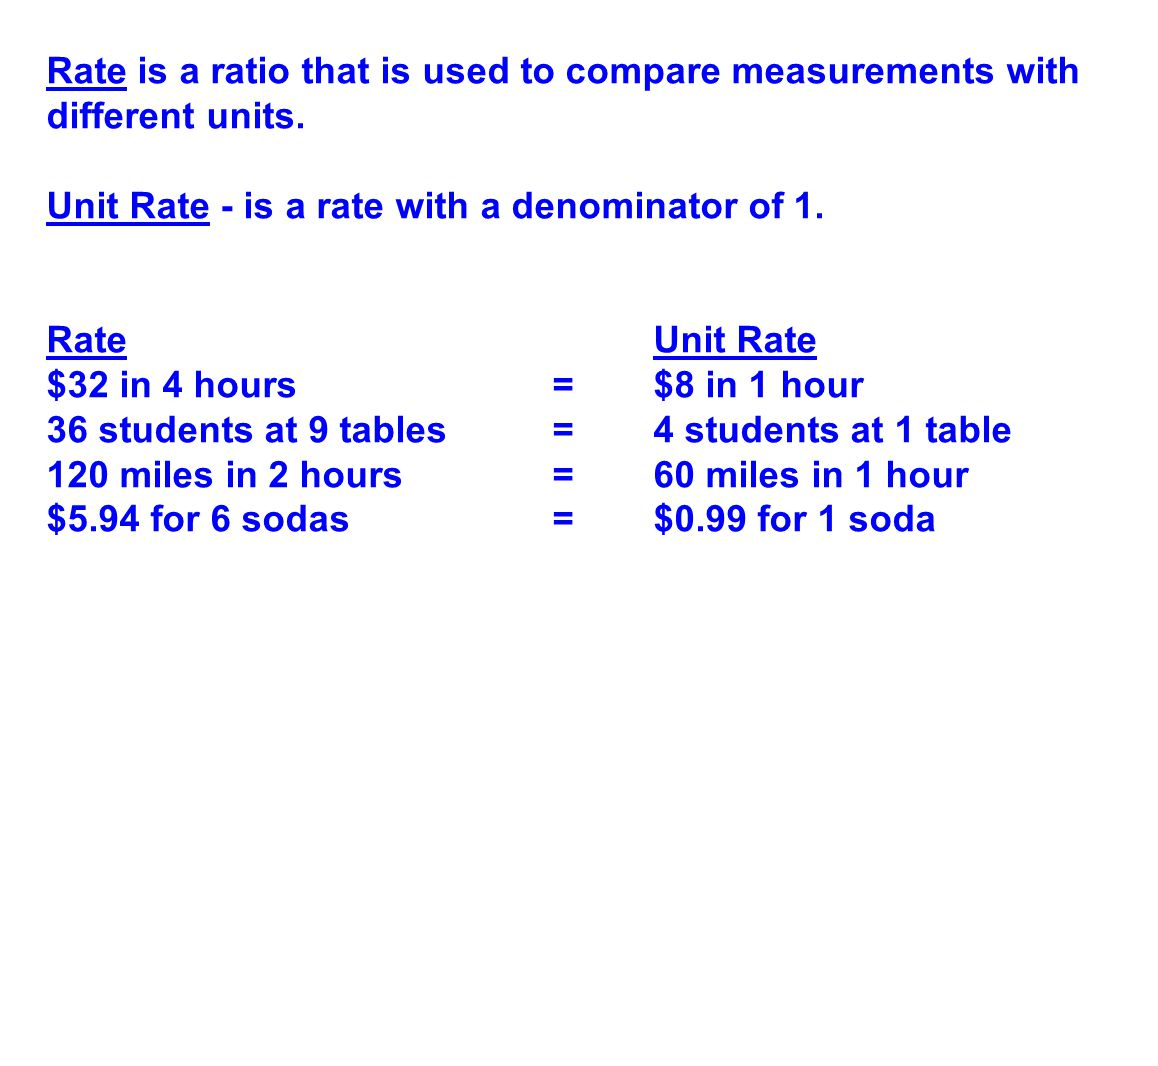 Rate is a ratio that is used to compare measurements with different units.